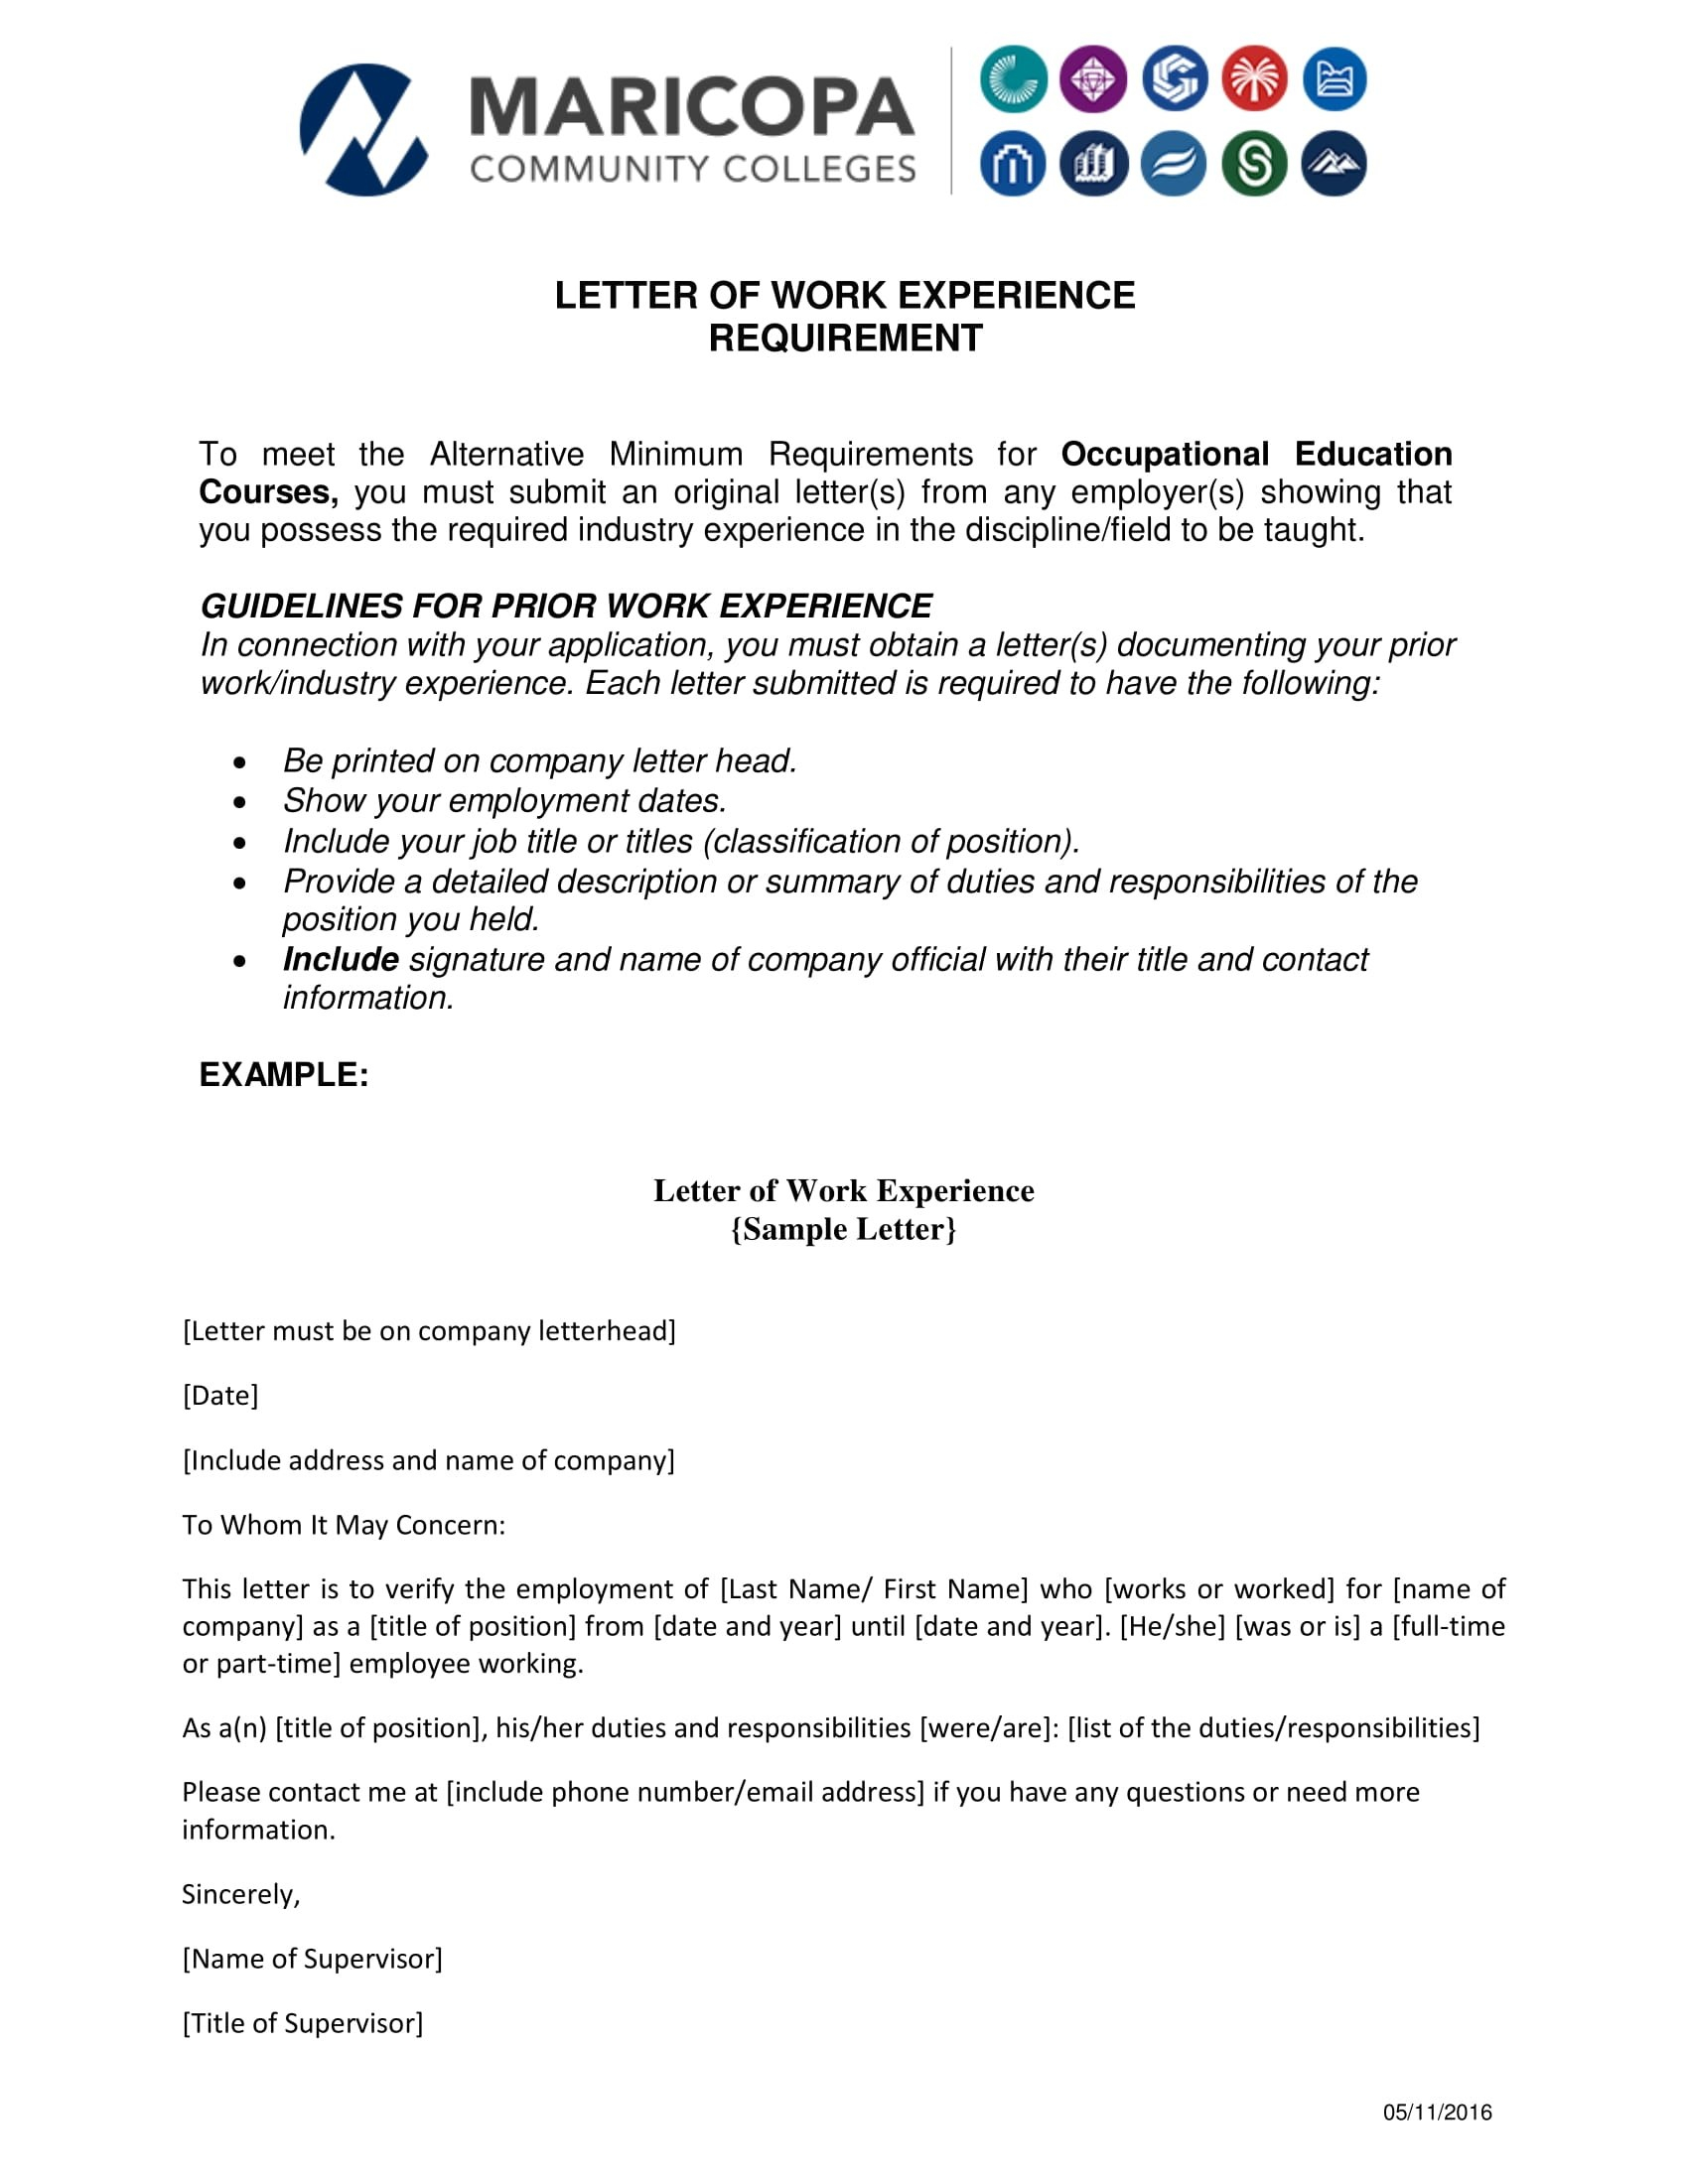 Experience Letter Templates In Pdf  Free  Premium Templates Throughout Template Of Experience Certificate